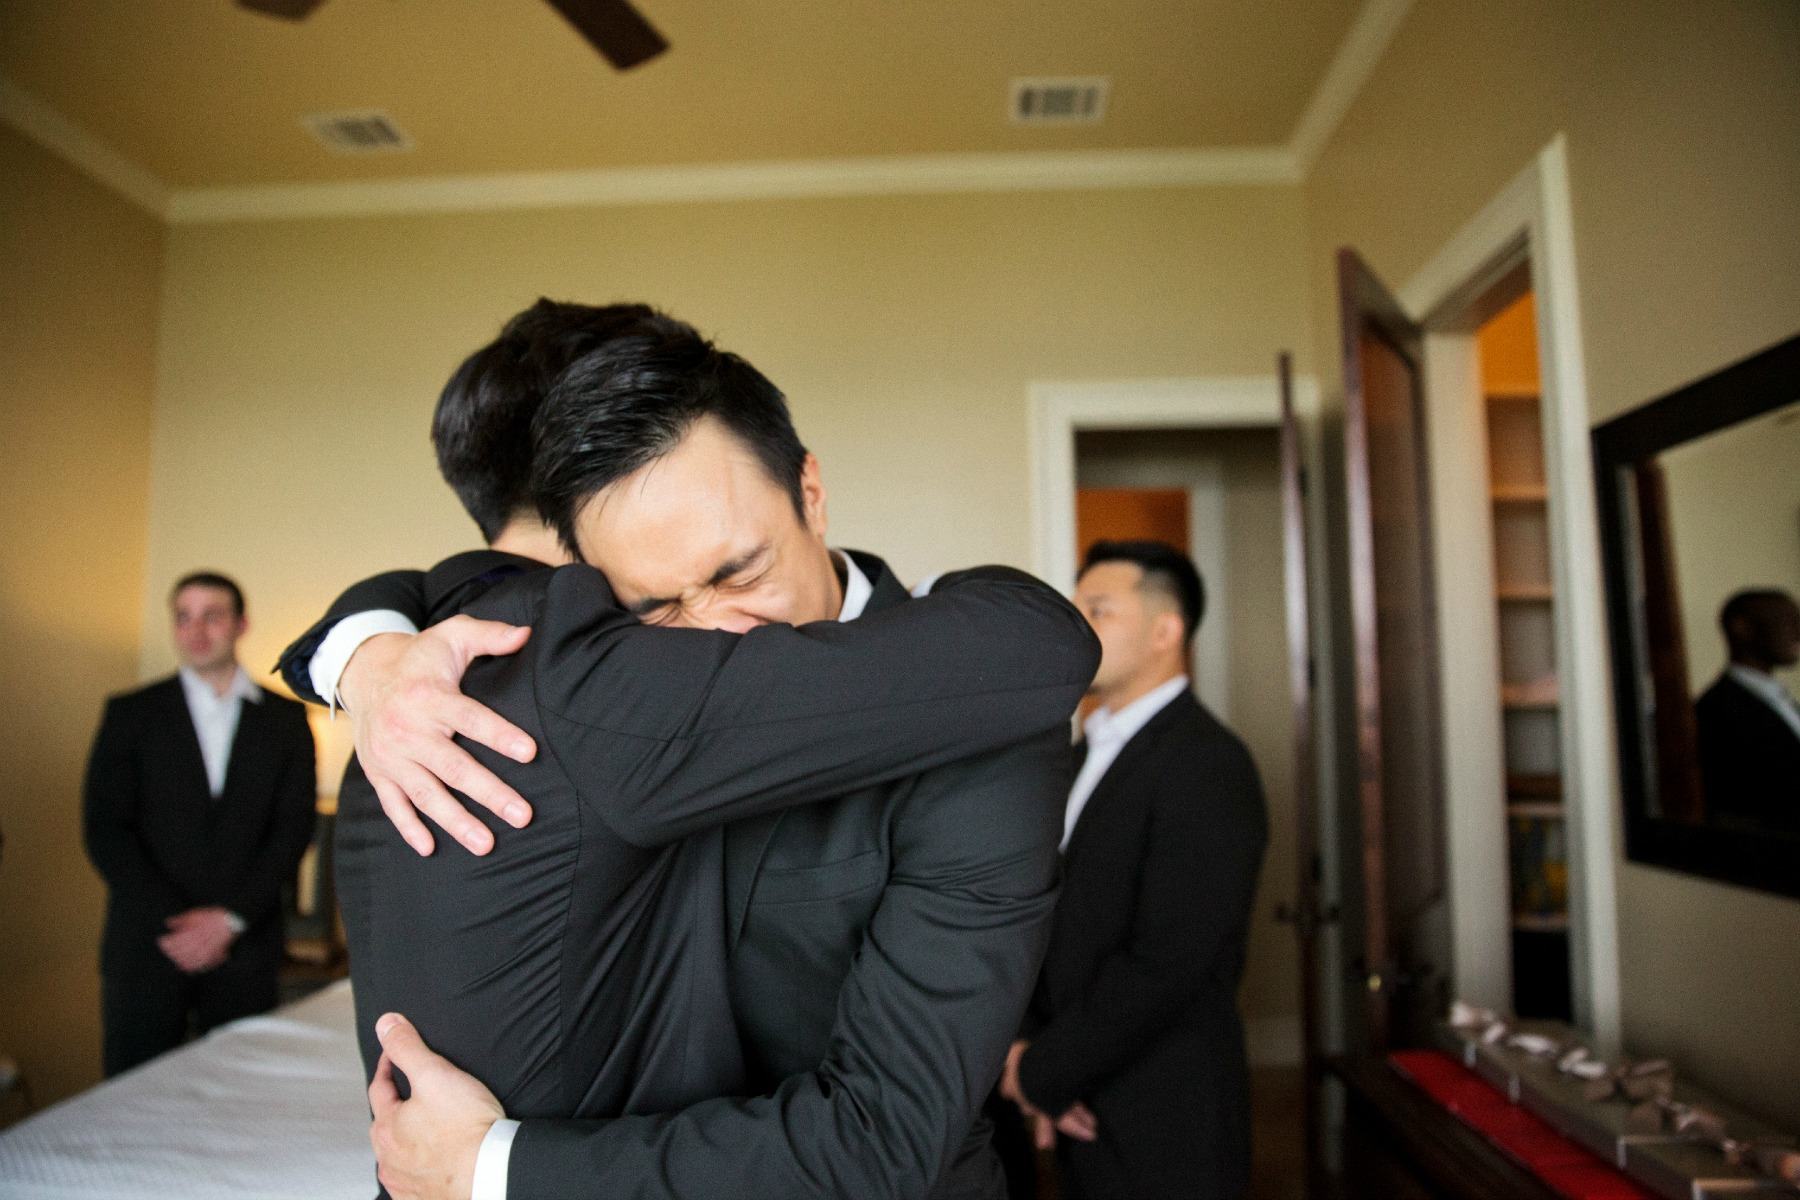 groom and best friend hug in an emotional moment